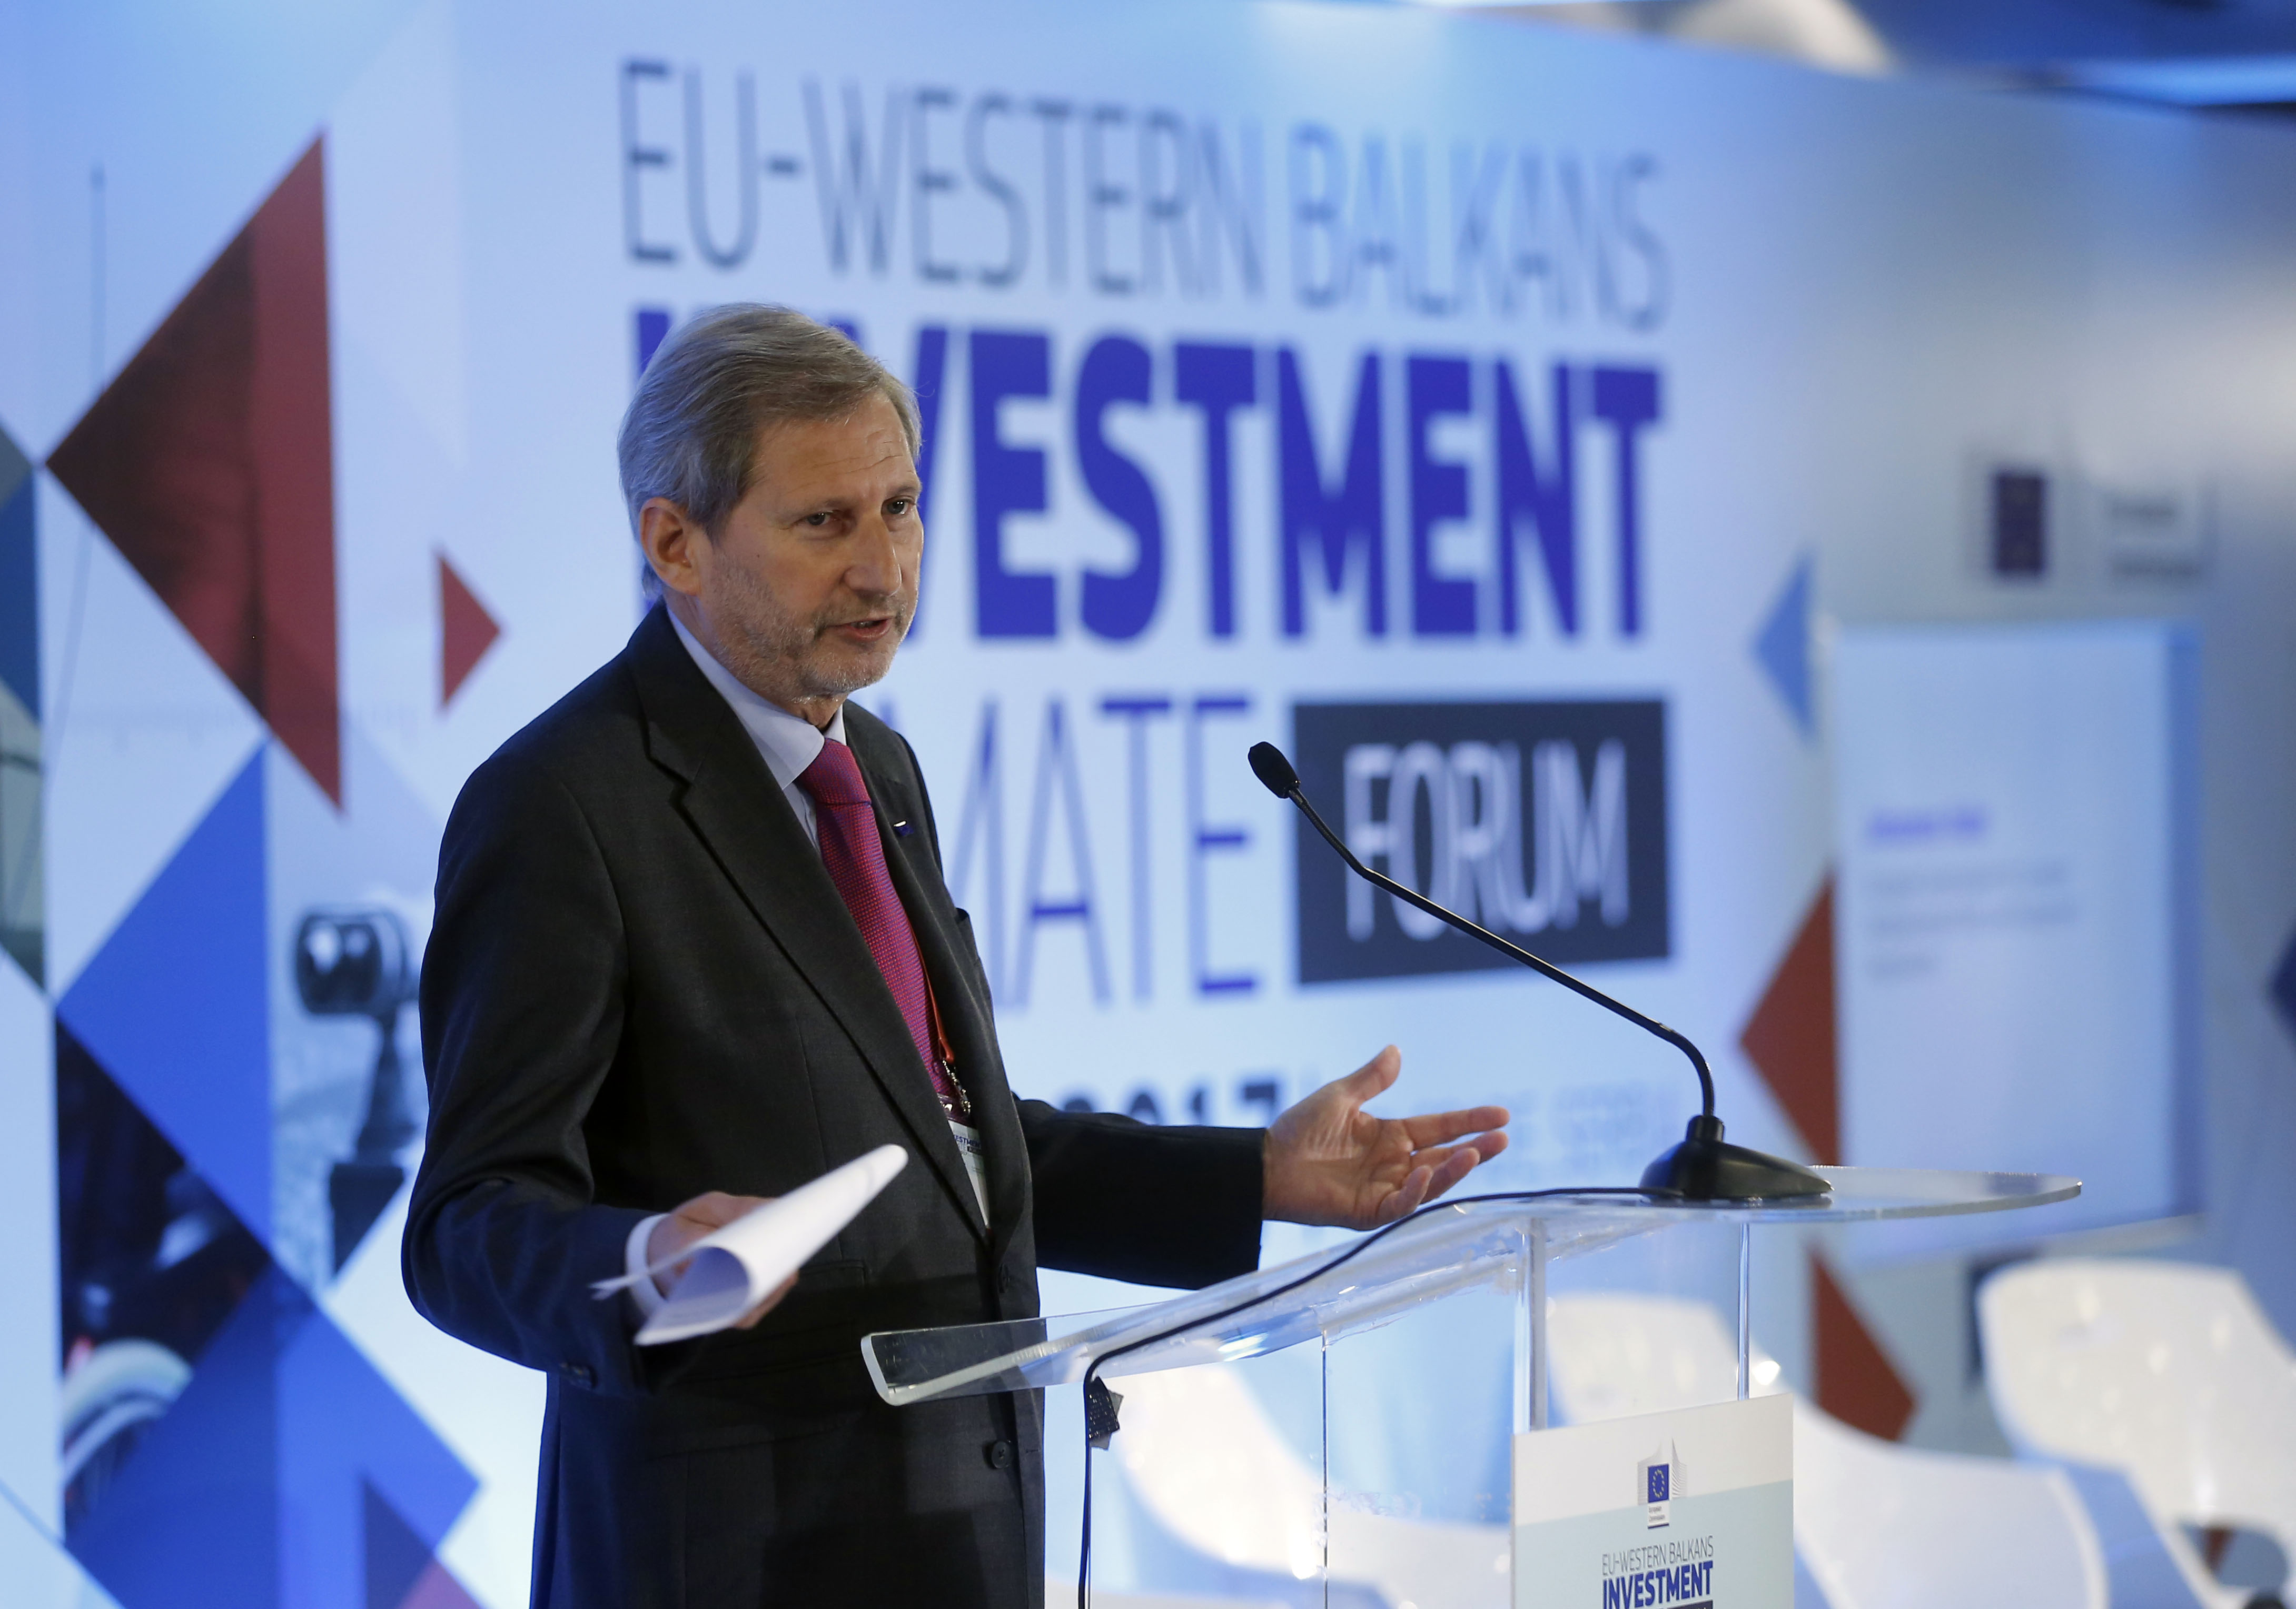 EU European neighborhood policy and enlargement negotiations commissioner Johannes Hahn speaks at  a EU-Western Balkans Investment Climate Forum  in Belgrade on June ,8.2017.